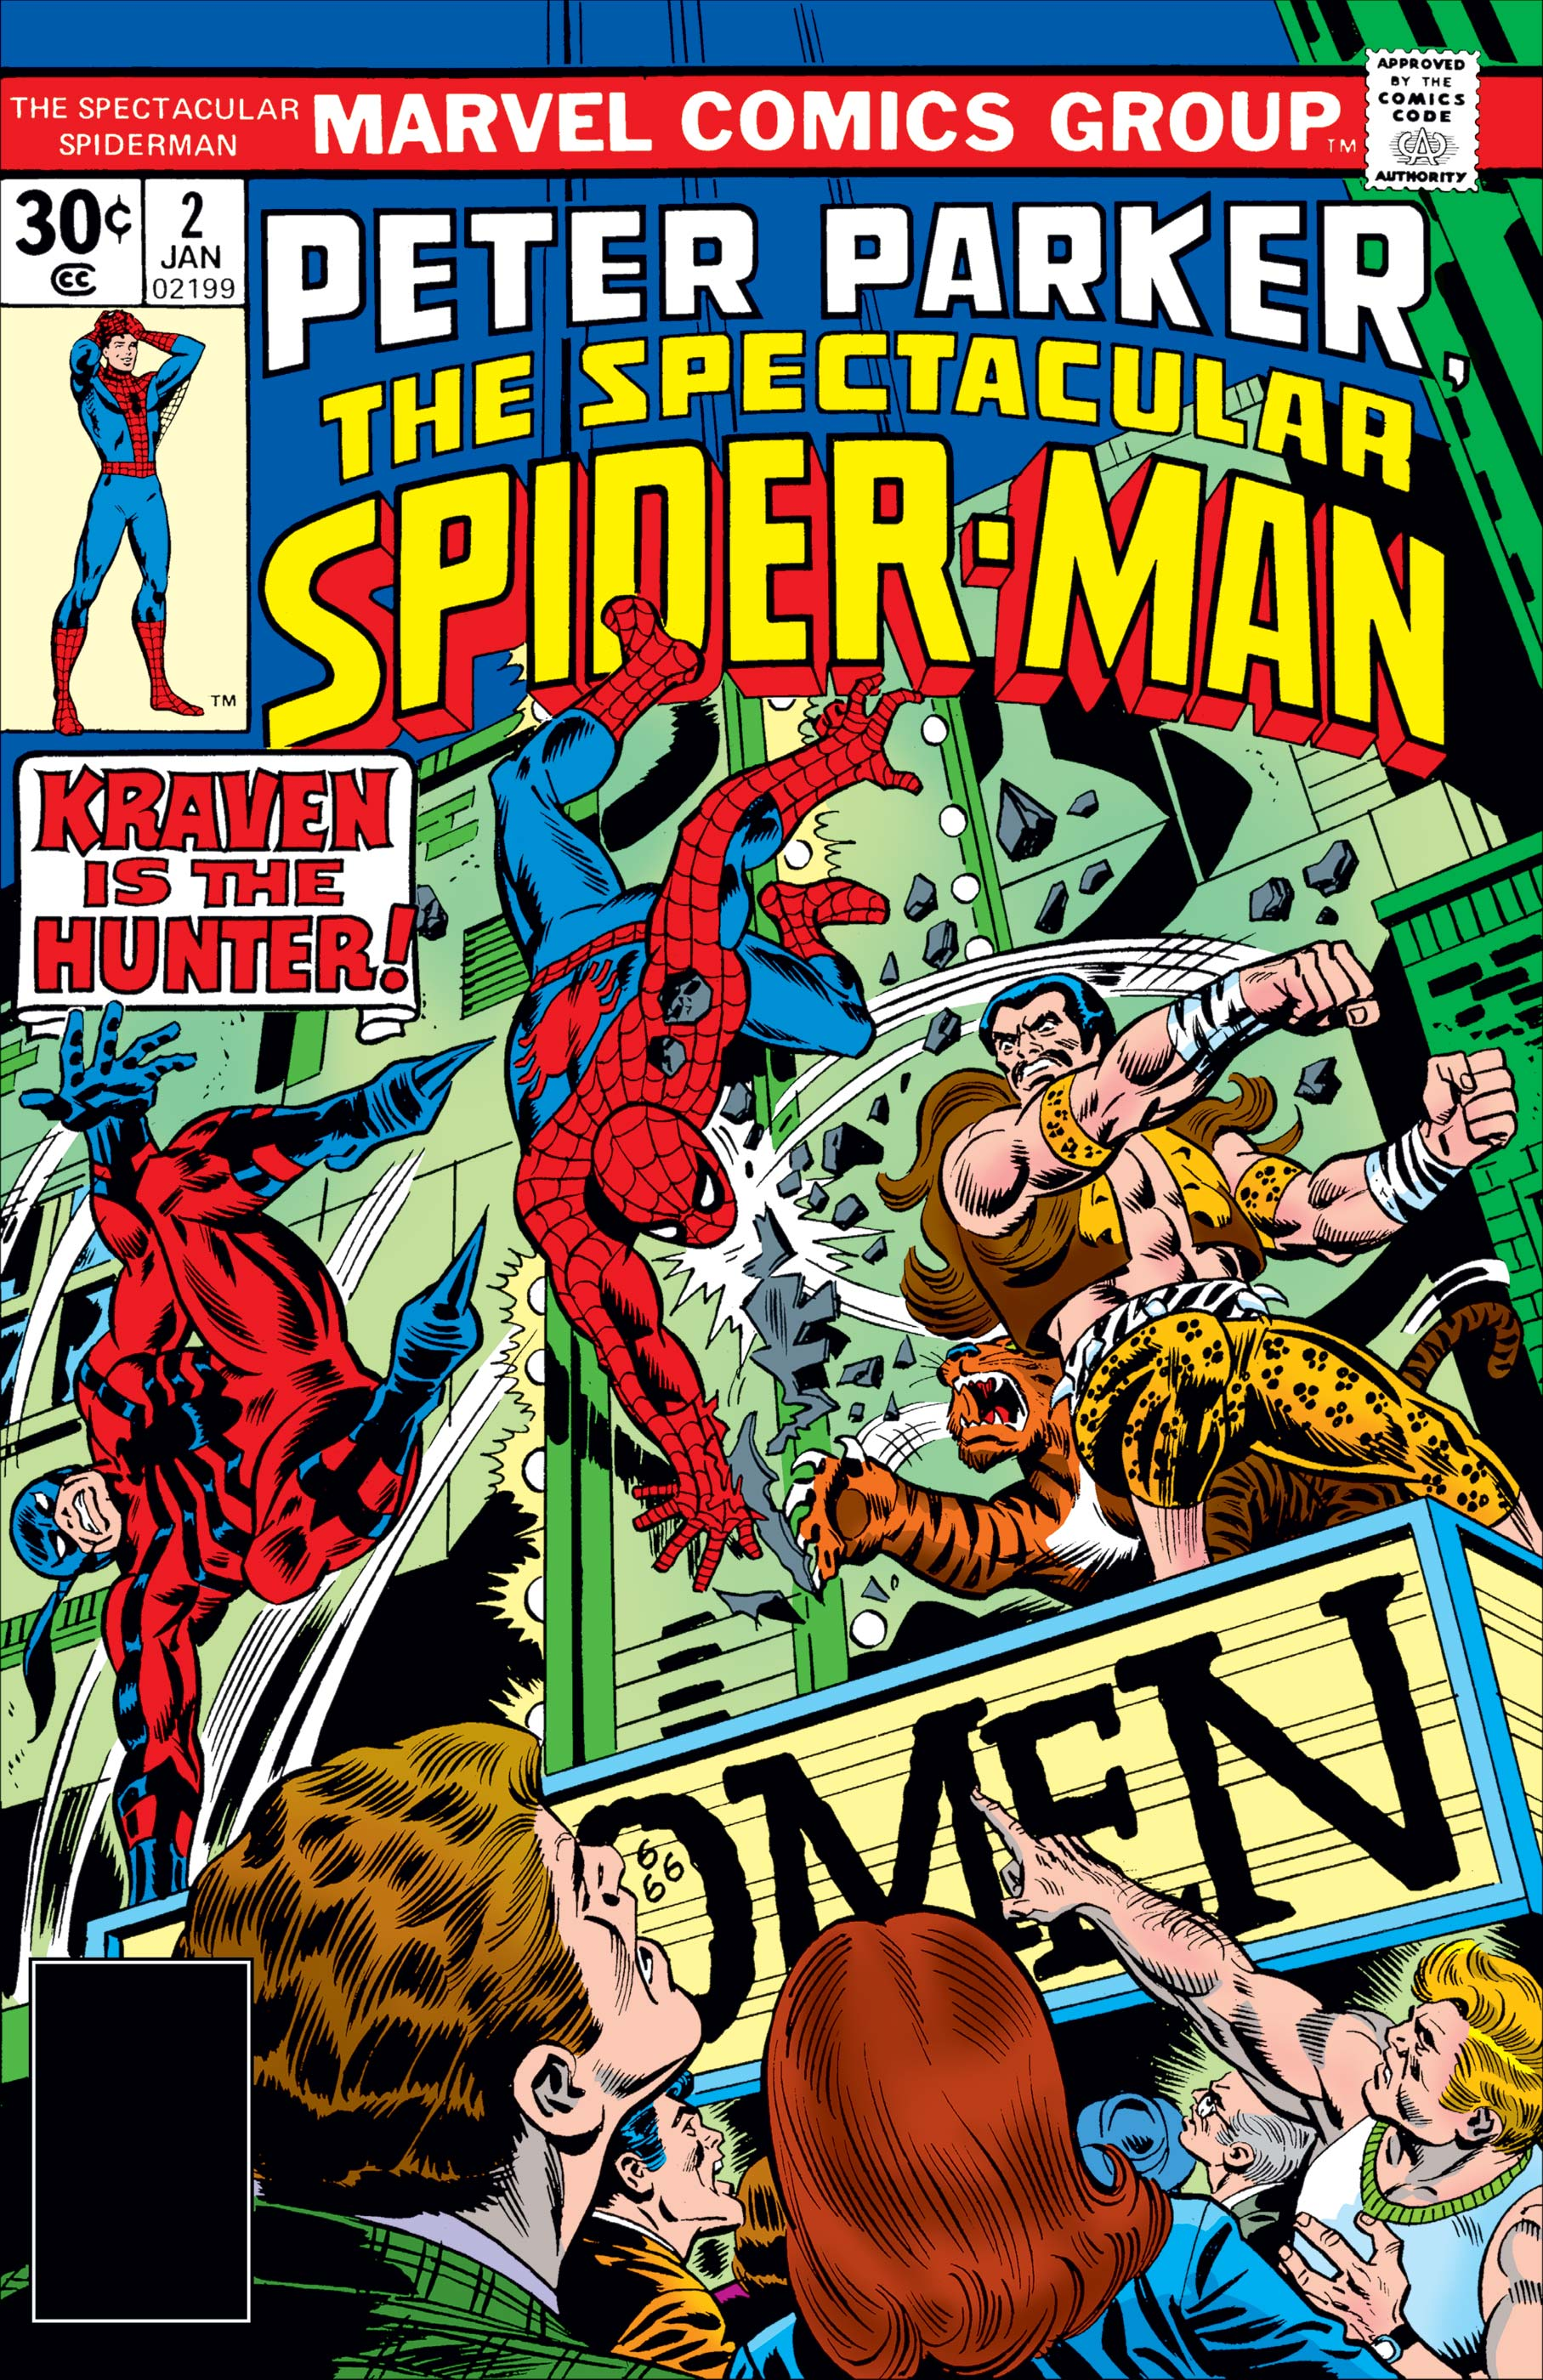 Peter Parker, the Spectacular Spider-Man (1976) #2